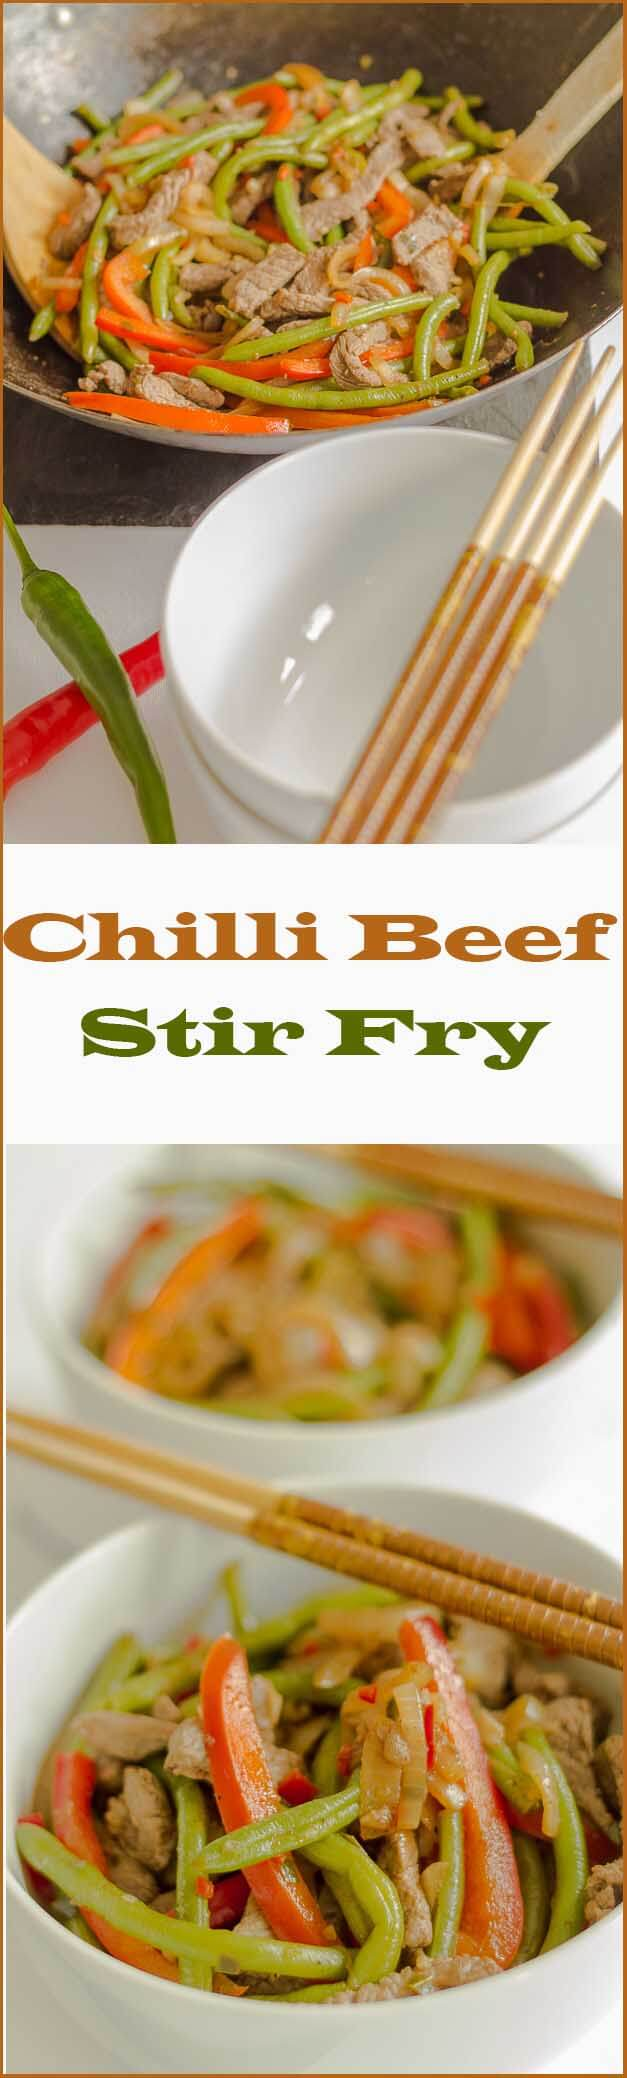 Chilli beef stir fry. Thin strips of steak, pepper and green beans cooked in a tasty sauce make up this sensational easy, healthy stir fry. Wok to table in just over 30 minutes!